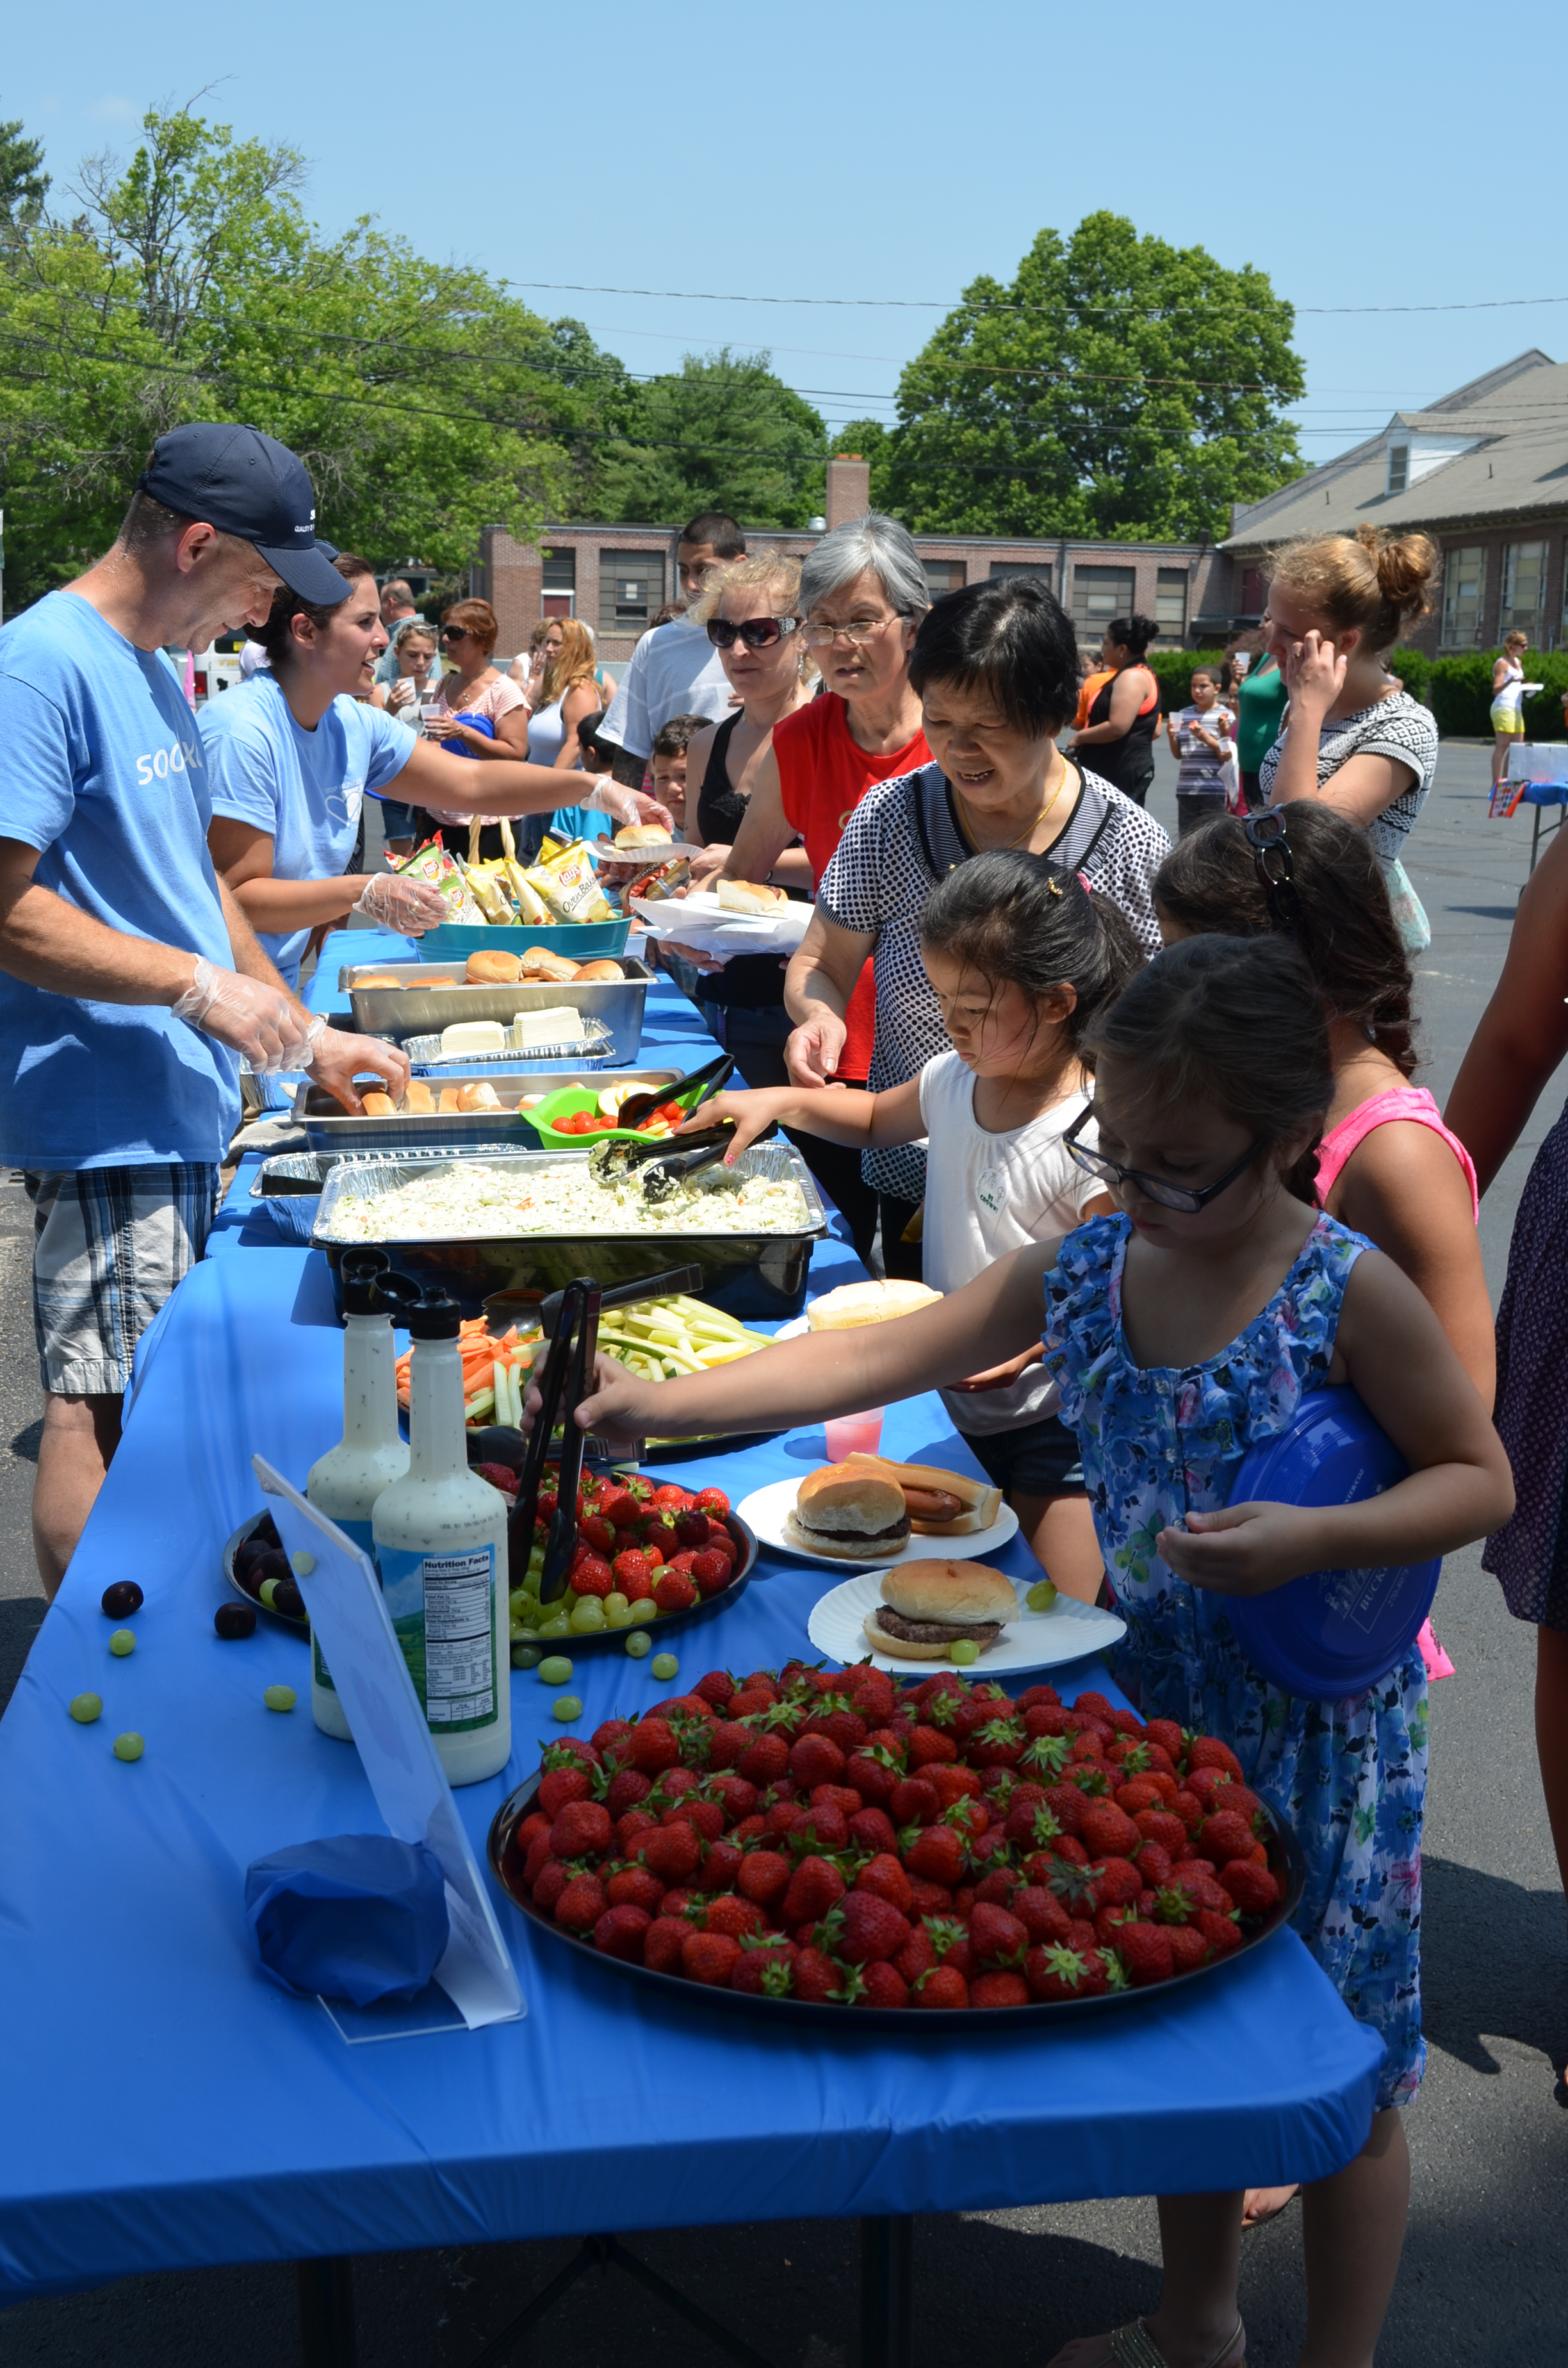 Kids and families getting a summer meal